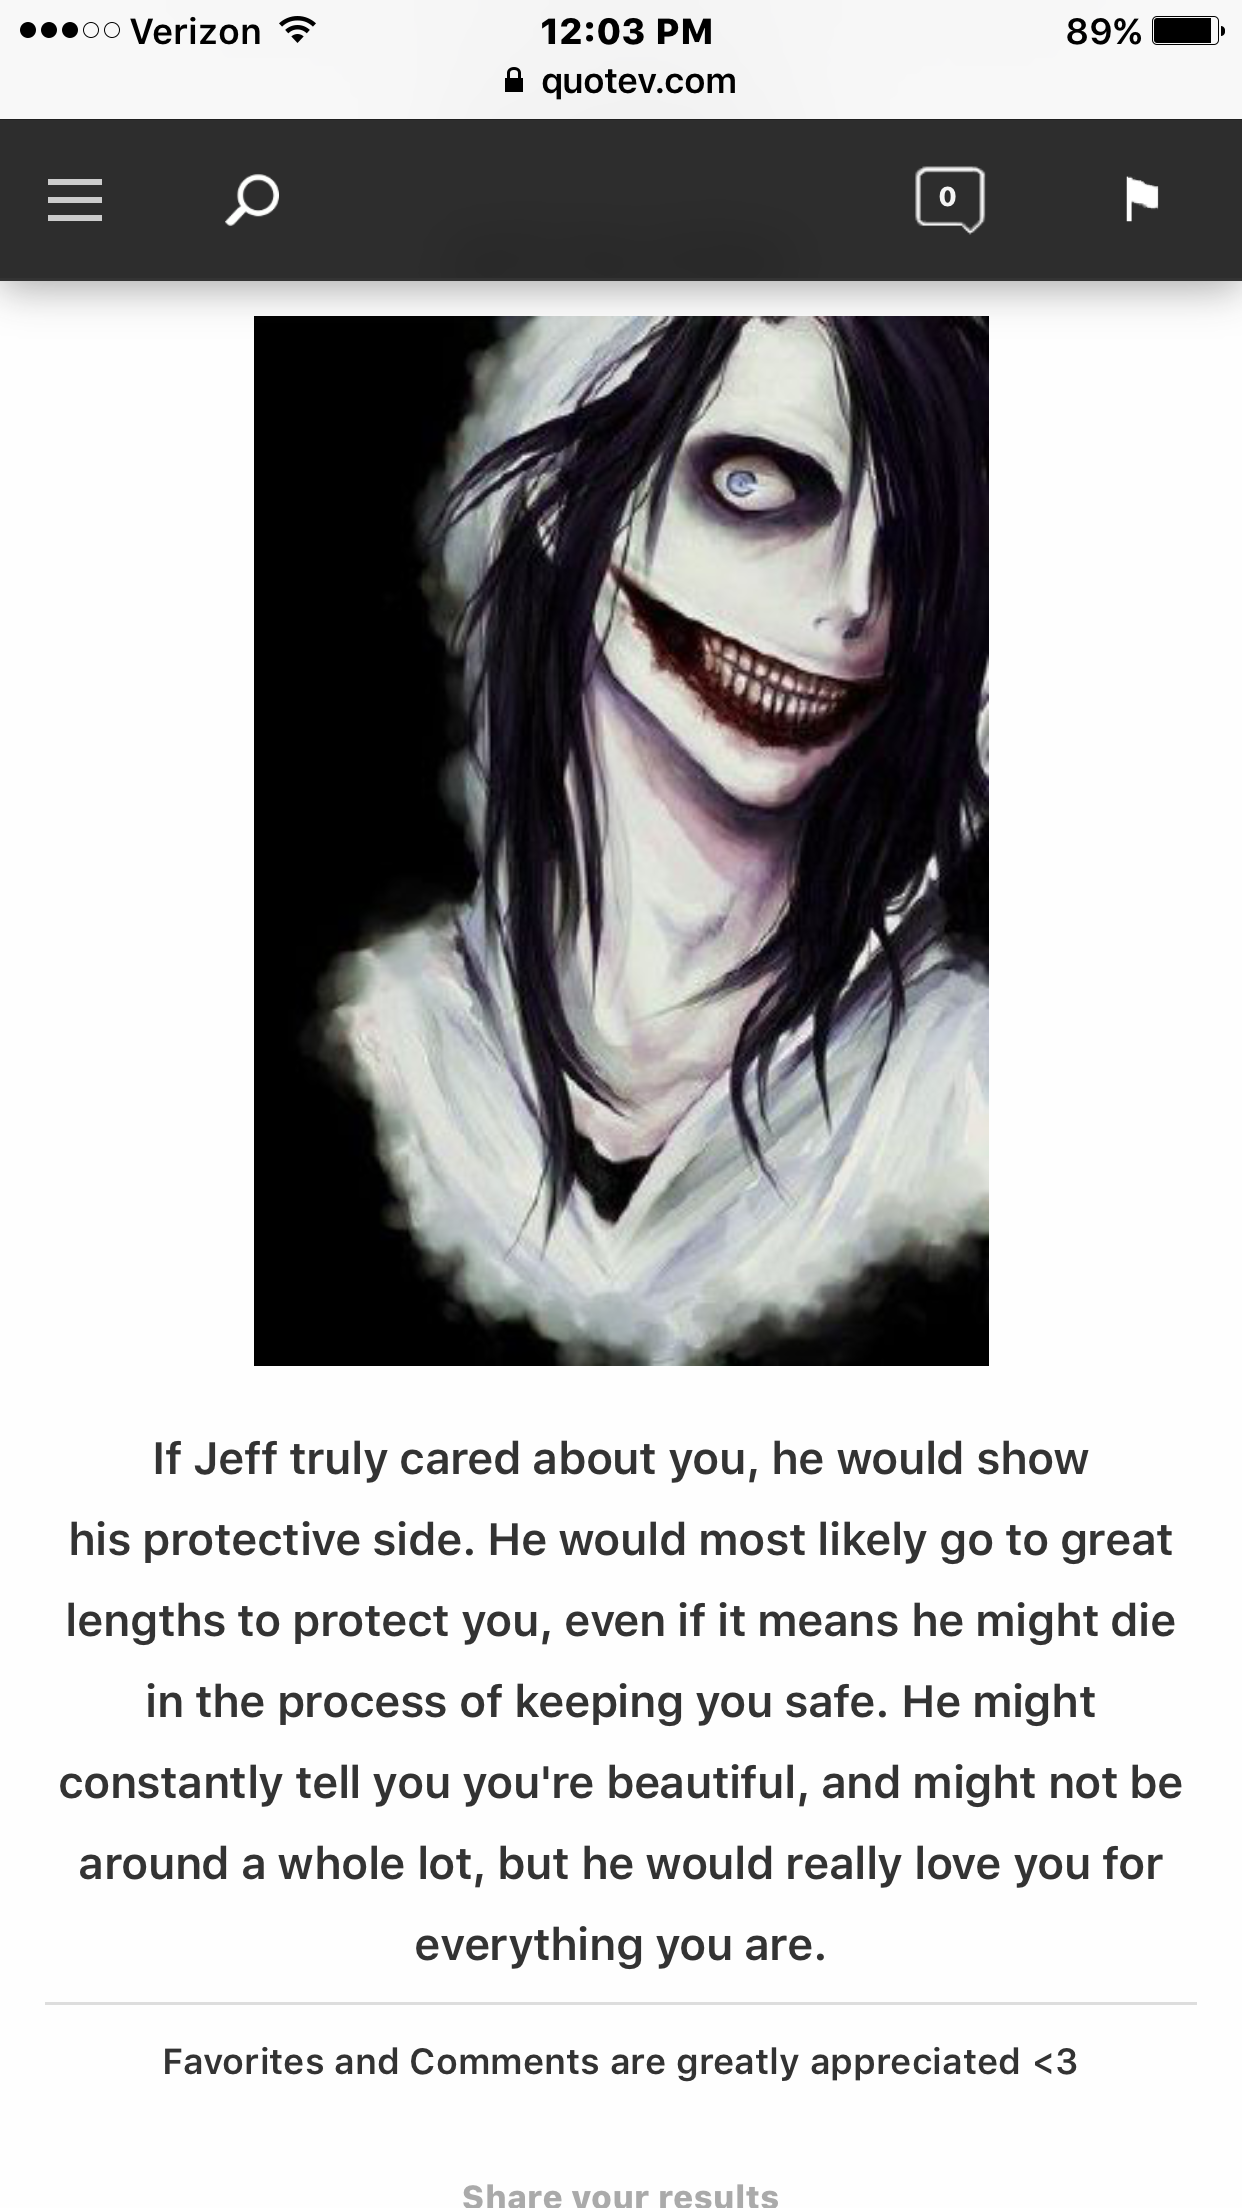 Creepypasta dating quizzes | Which CreepyPasta would date you?